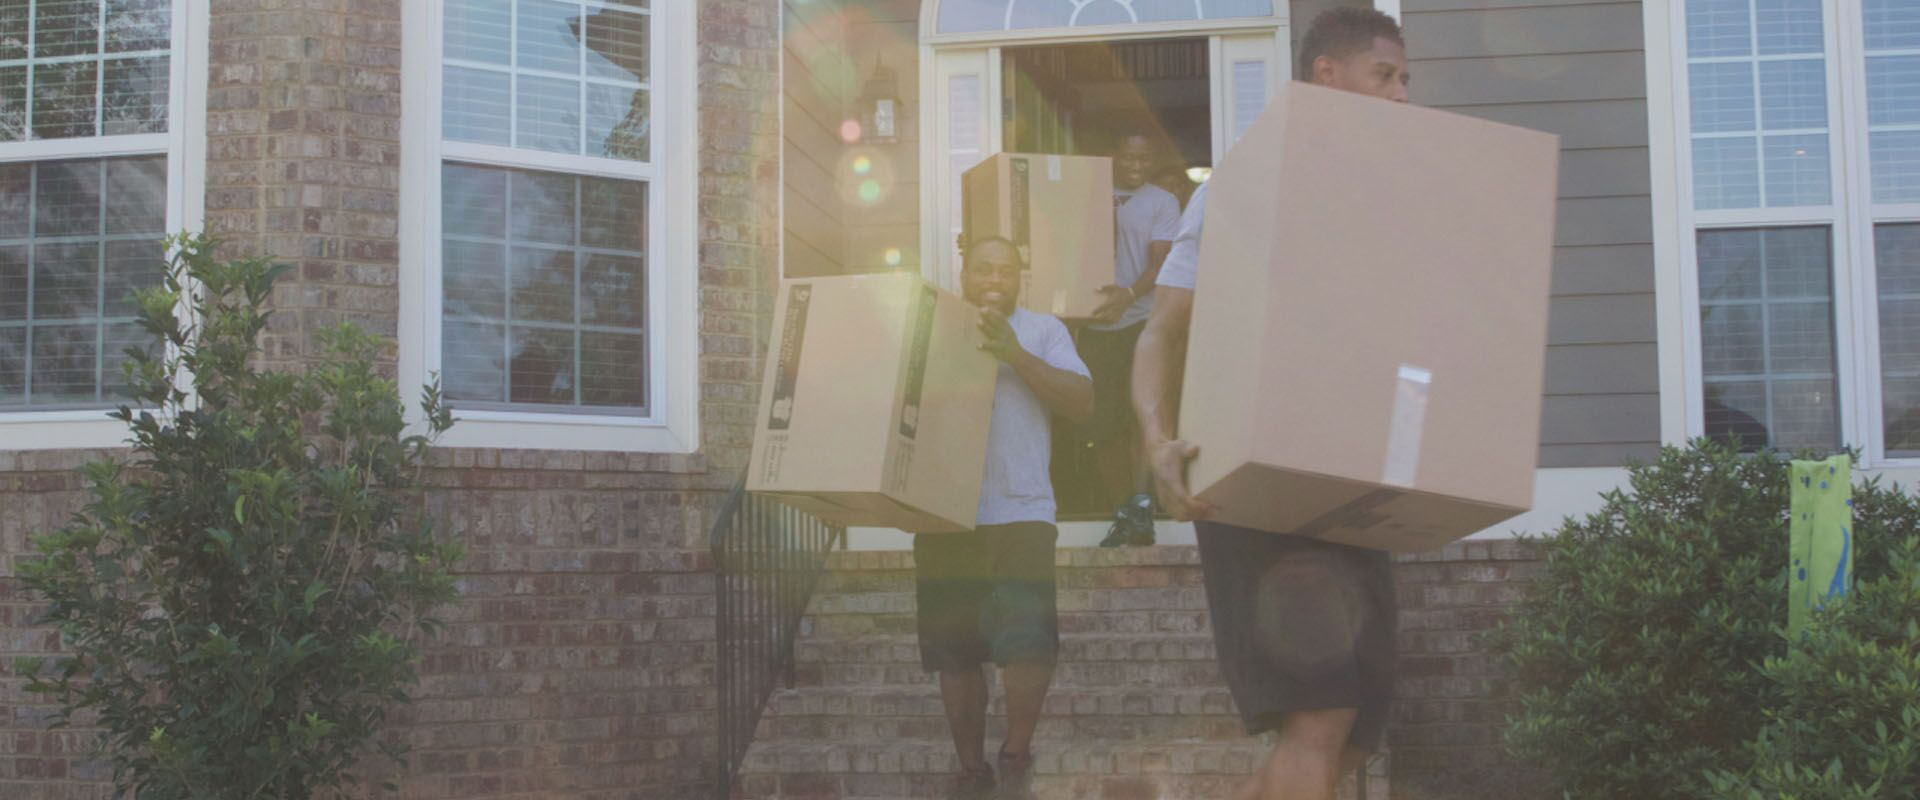 Packers and Movers - Looking for the best packers and movers in GA? Look no further. L'Goff Moving Company based in Athens, GA has proven to be one of the best moving companies around.